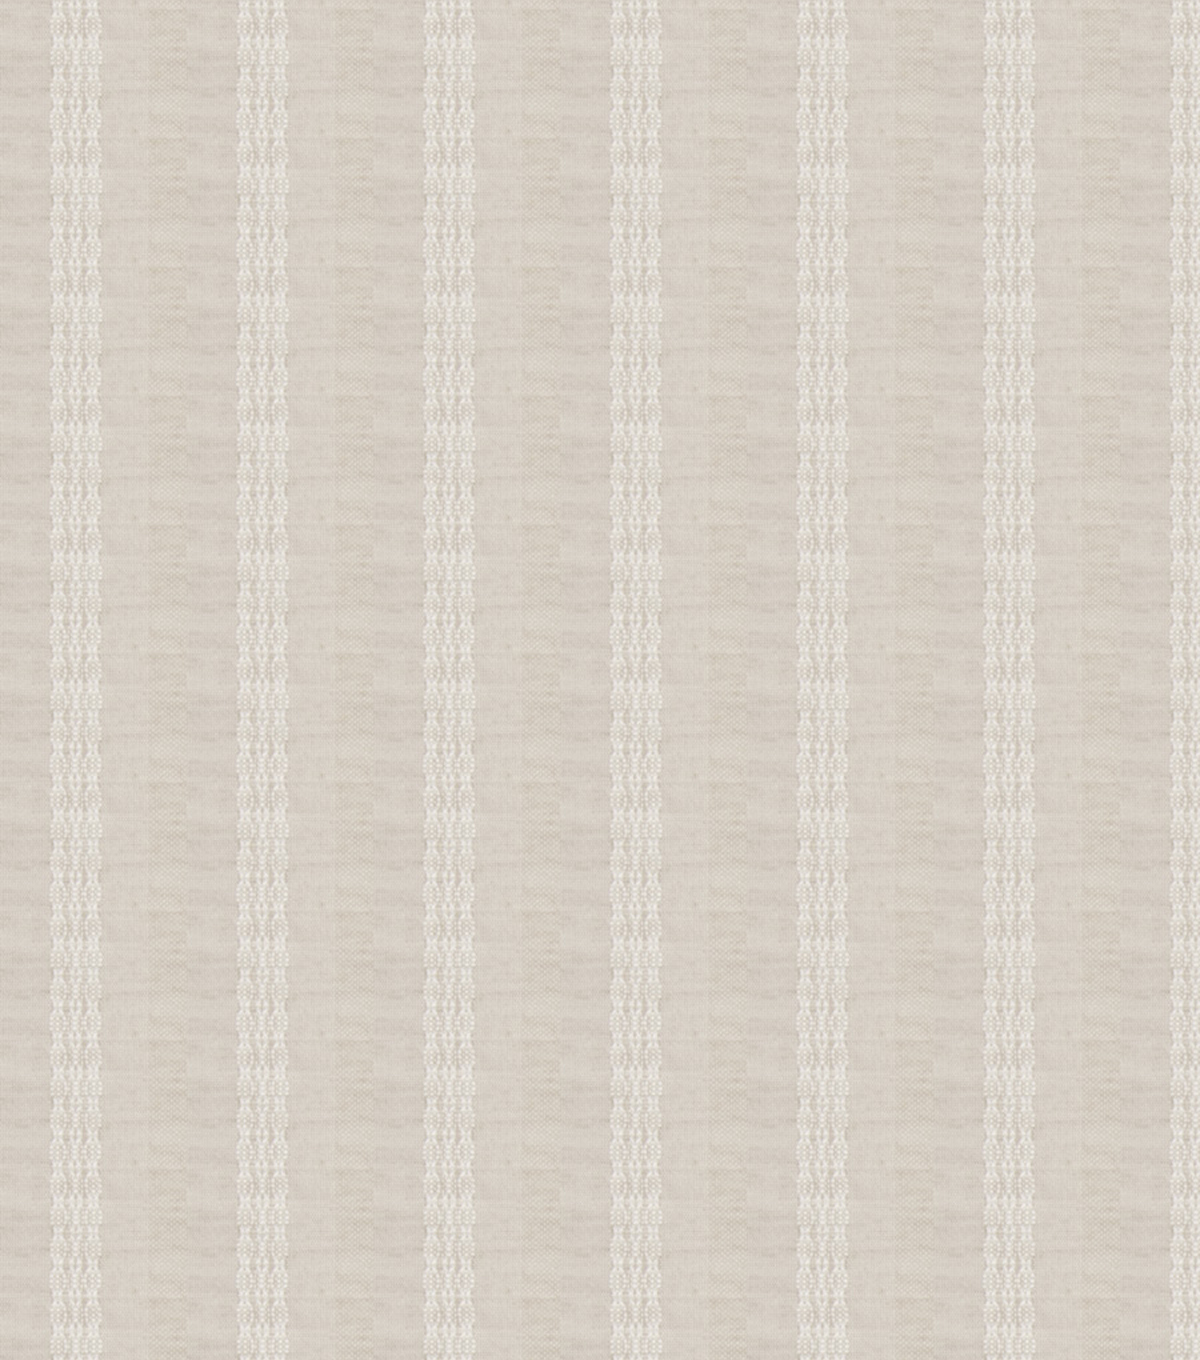 Home Decor 8\u0022x8\u0022 Fabric Swatch-Eaton Square Batista Canvas